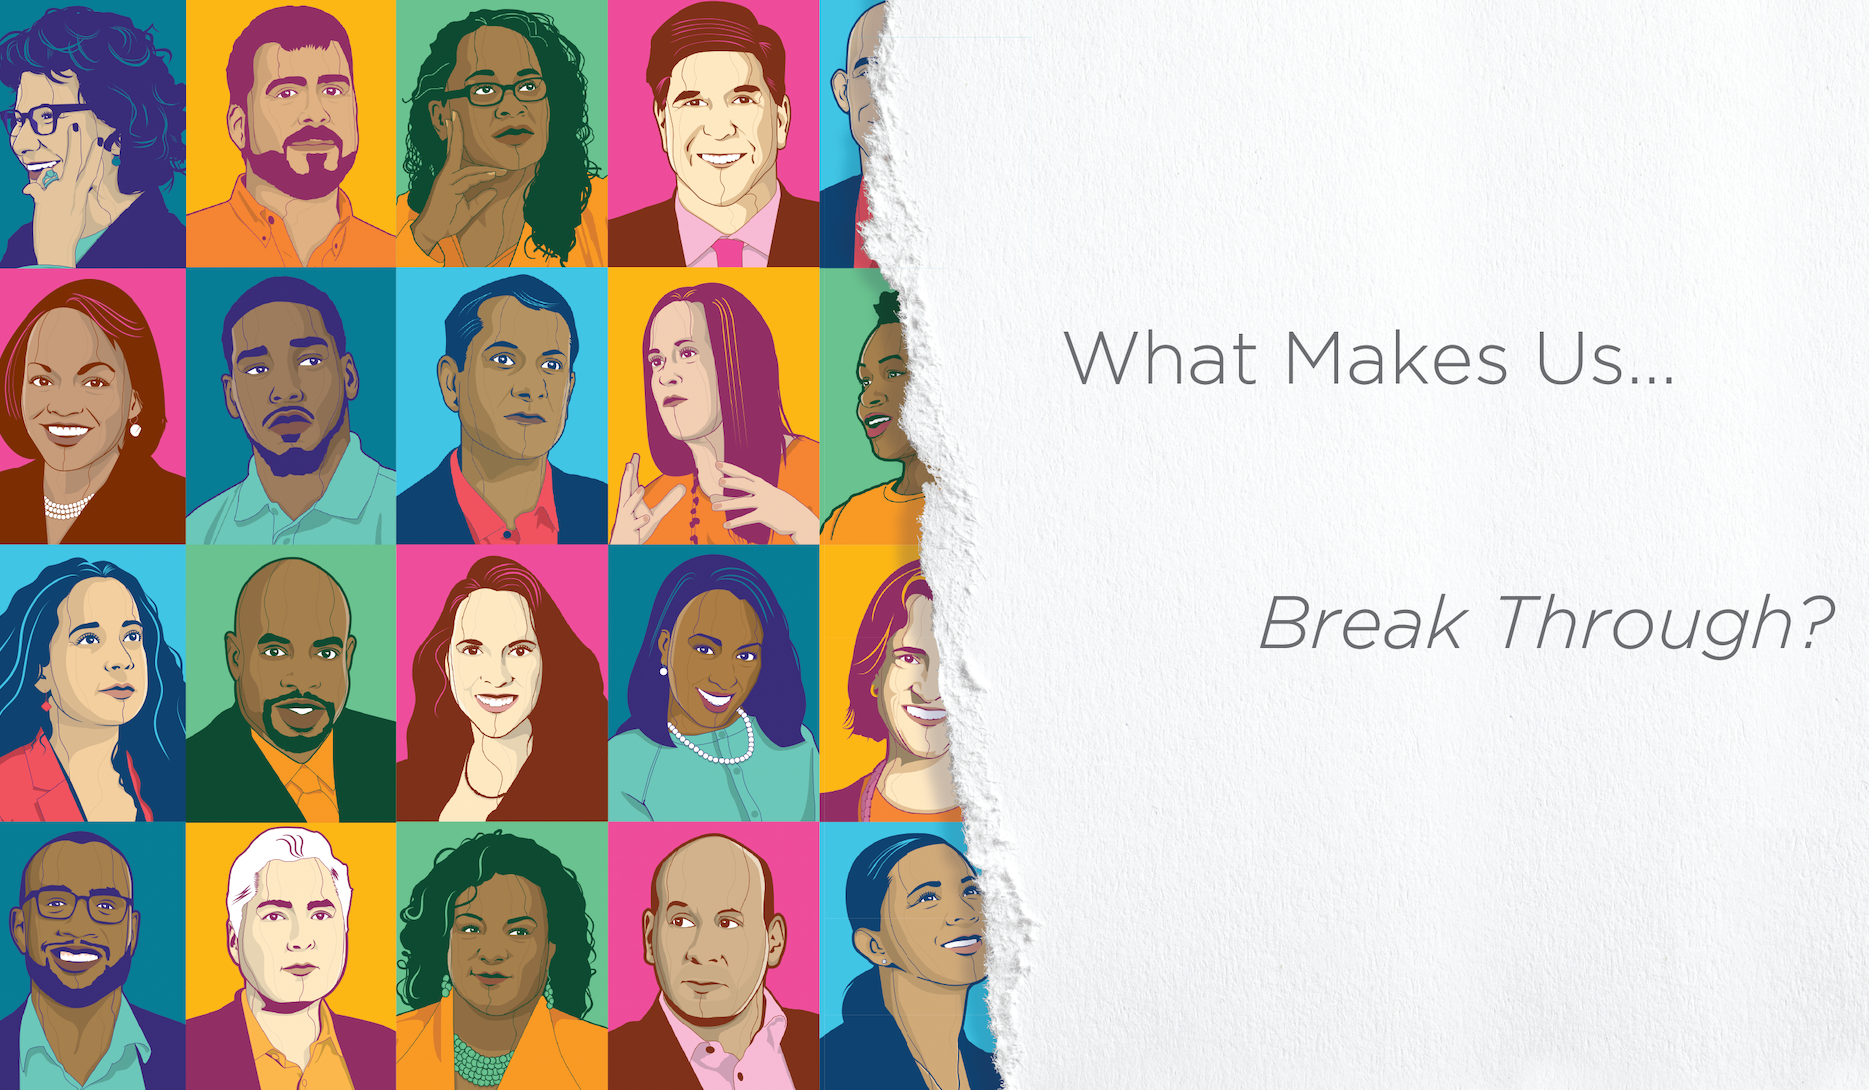 What Makes Us Break Through?